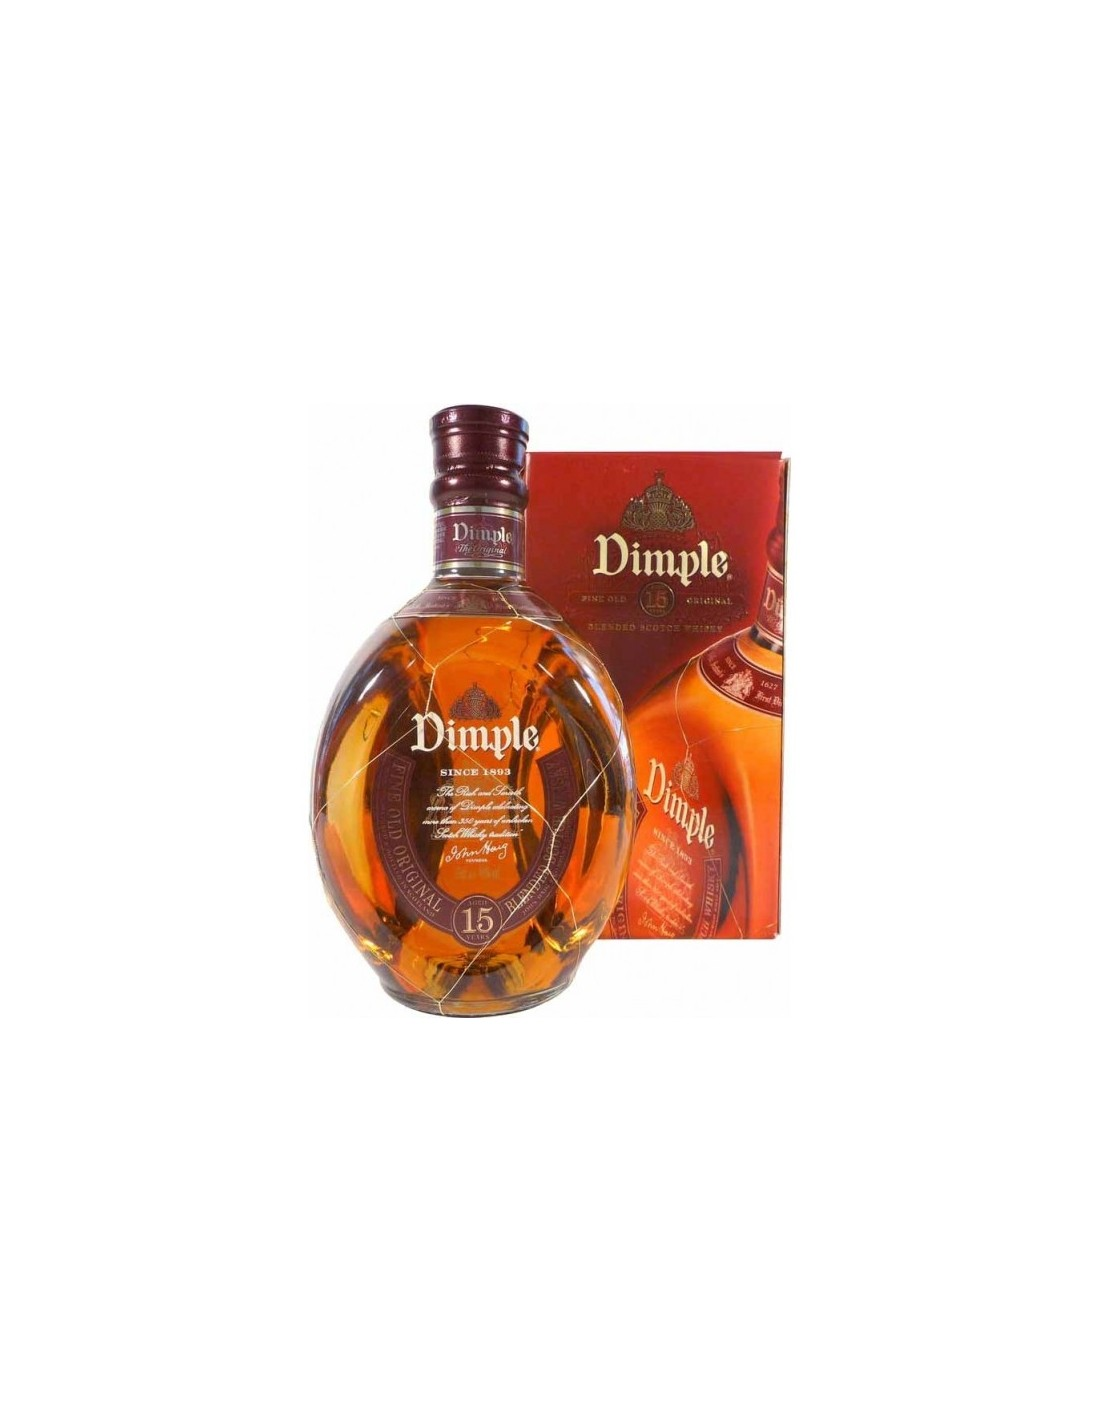 Blended Whisky Dimple, 15 ani, 43% alc., 0.7L, Scotia